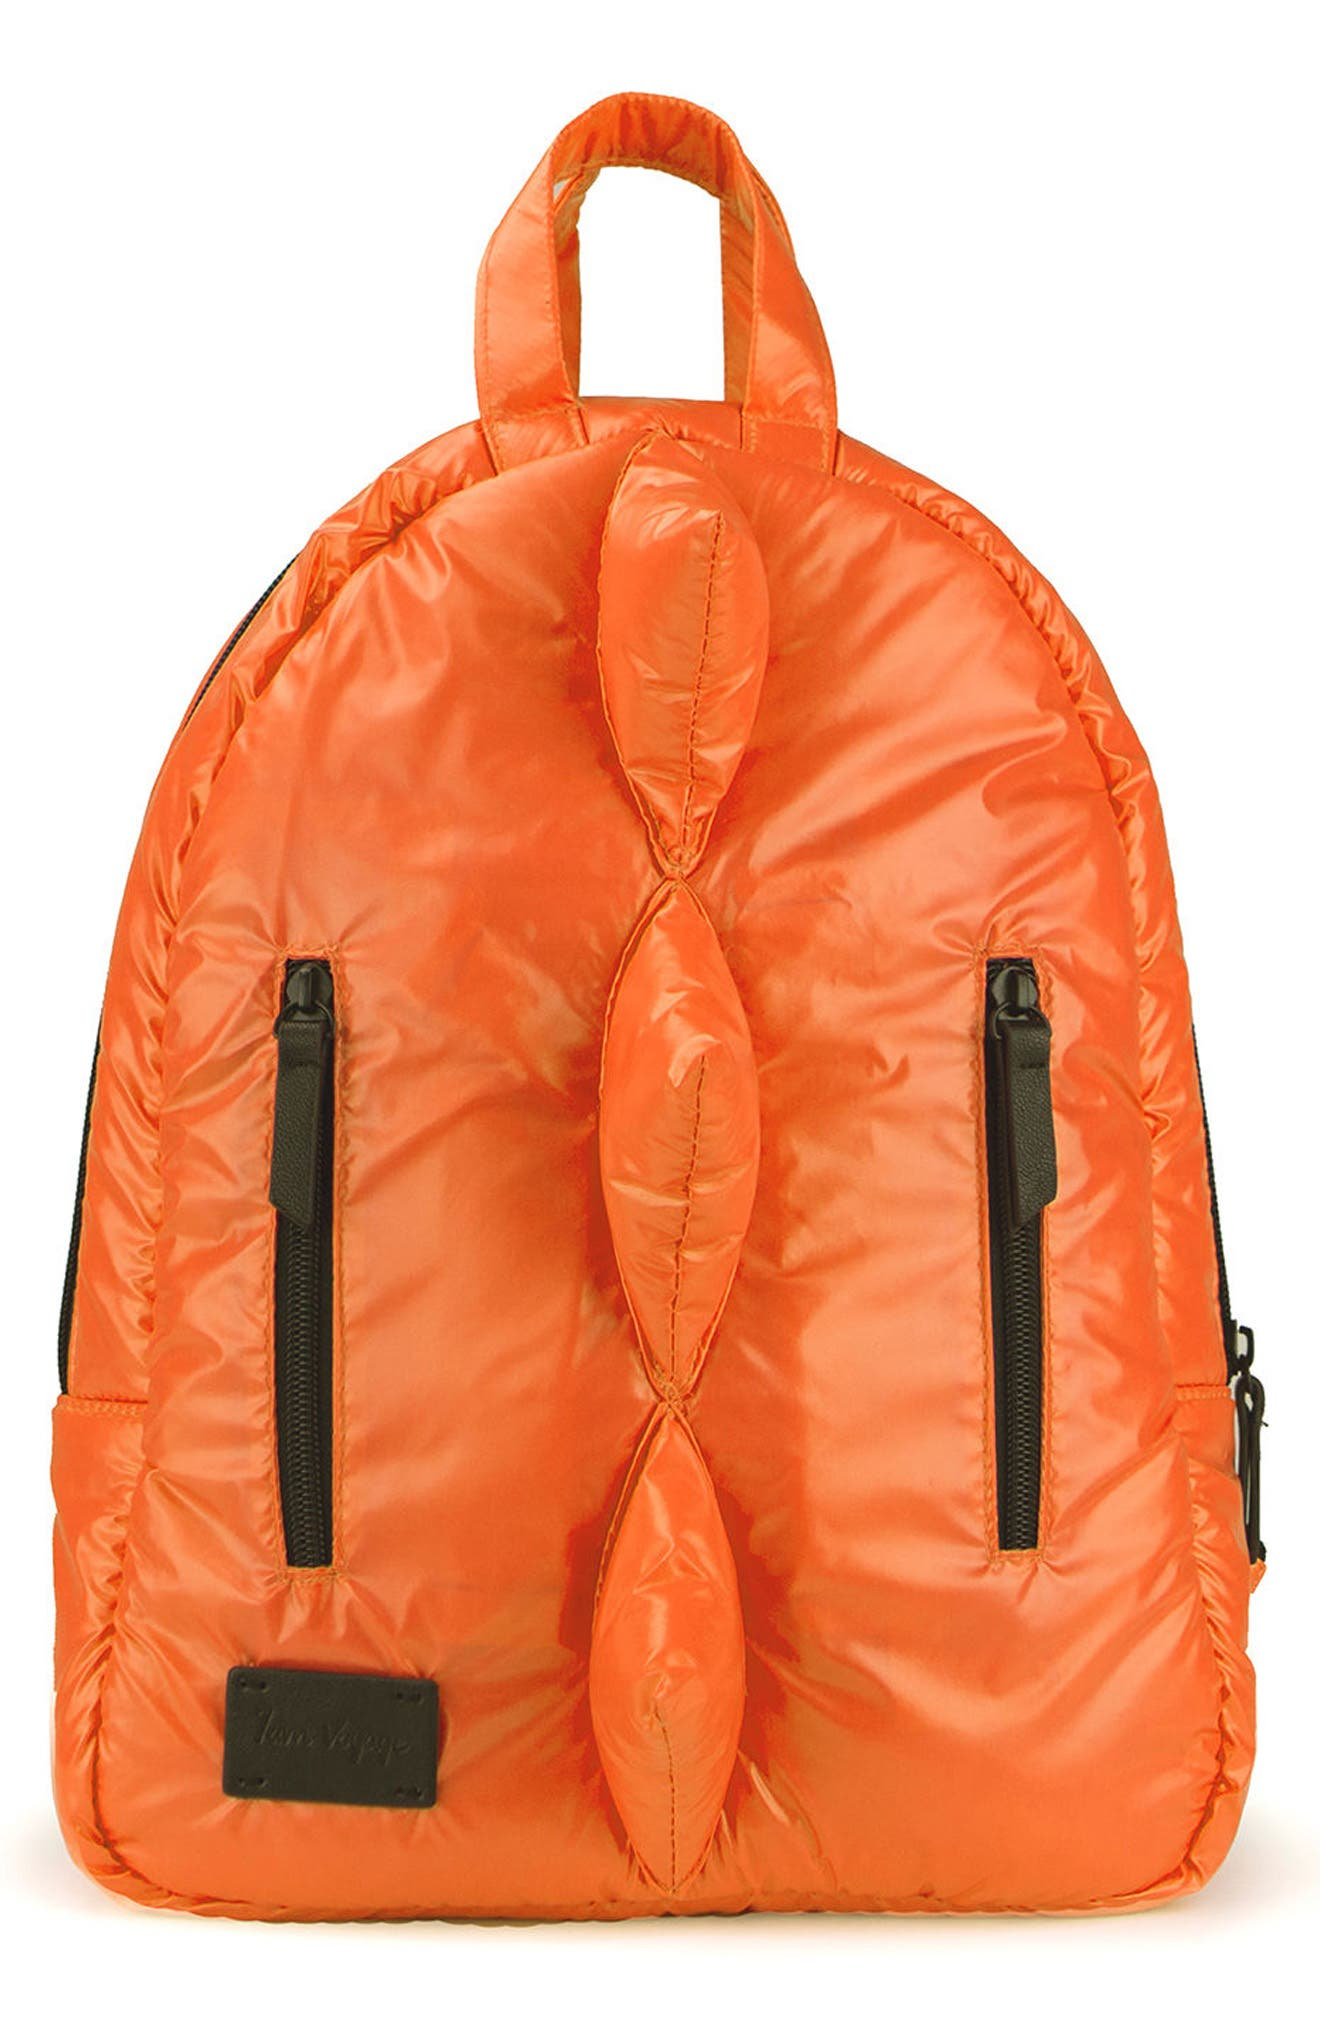 7 A.M. ENFANT Dino Water Repellent Mini Backpack